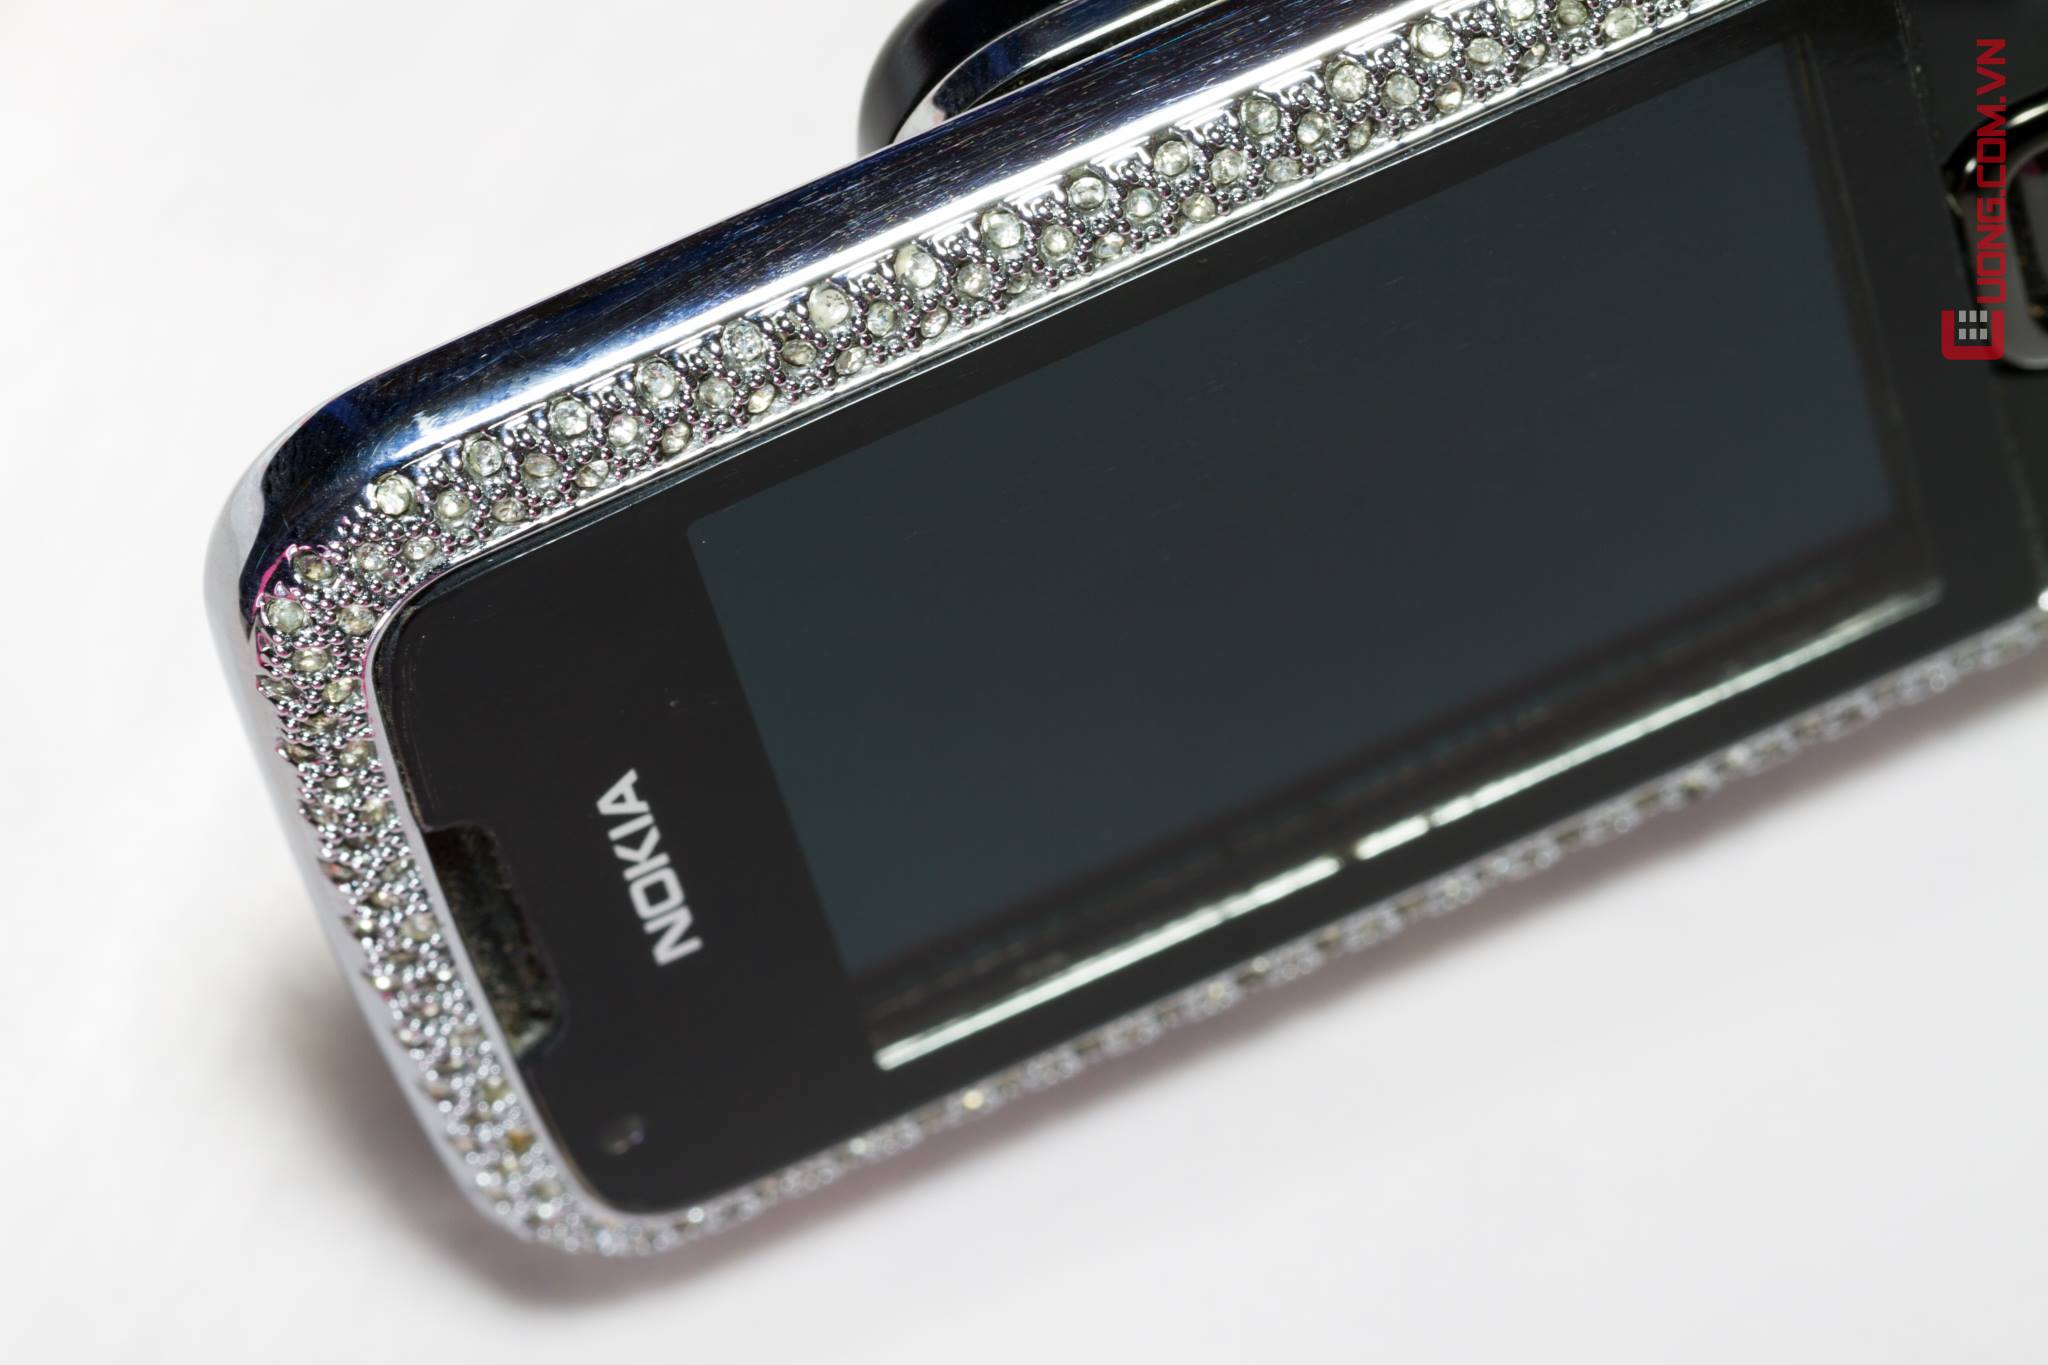 Nokia 8800 Black Arte Full Diamon